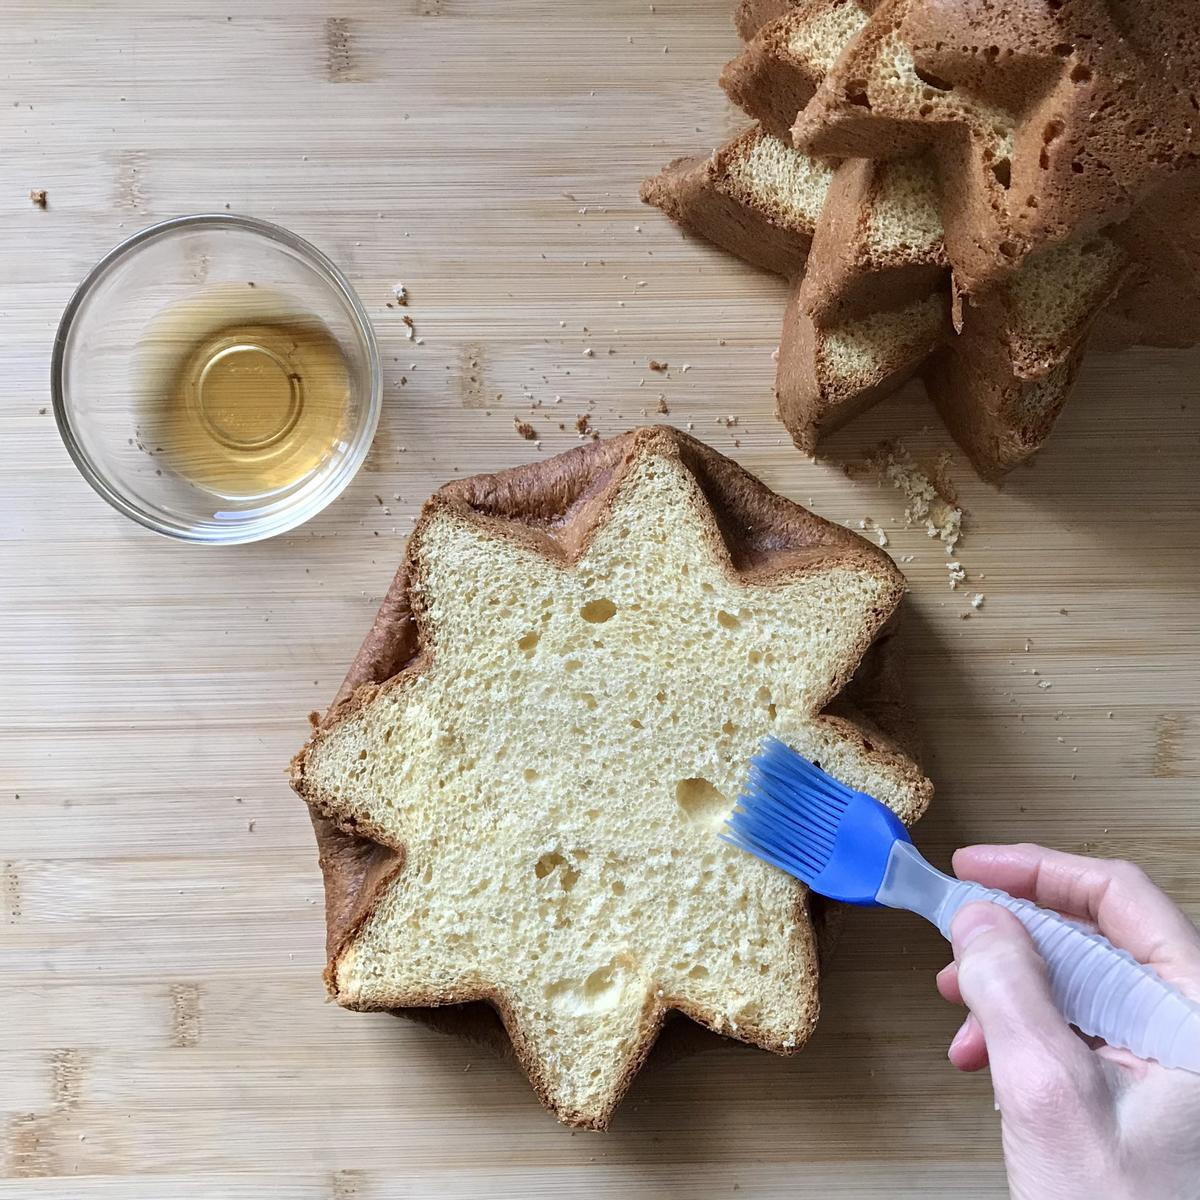 Rum being brushed on the surface of a pandoro cake.